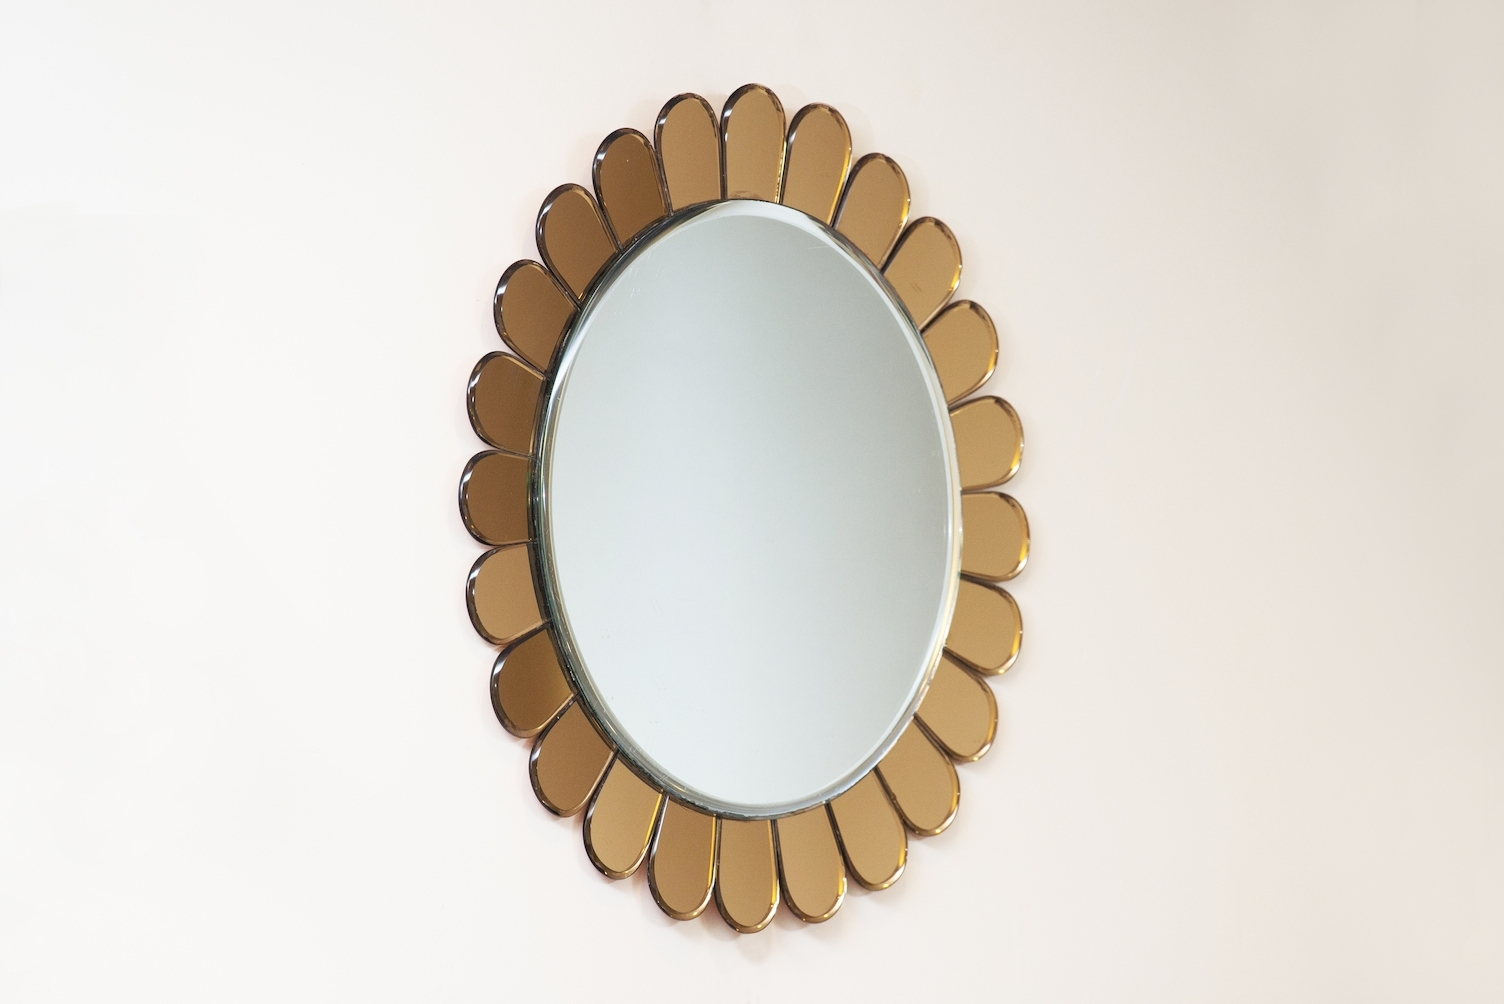 Italian Wall Mirror From Cristal Art, 1950S For Sale At Pamono For 2017 Italian Wall Art For Sale (View 6 of 15)